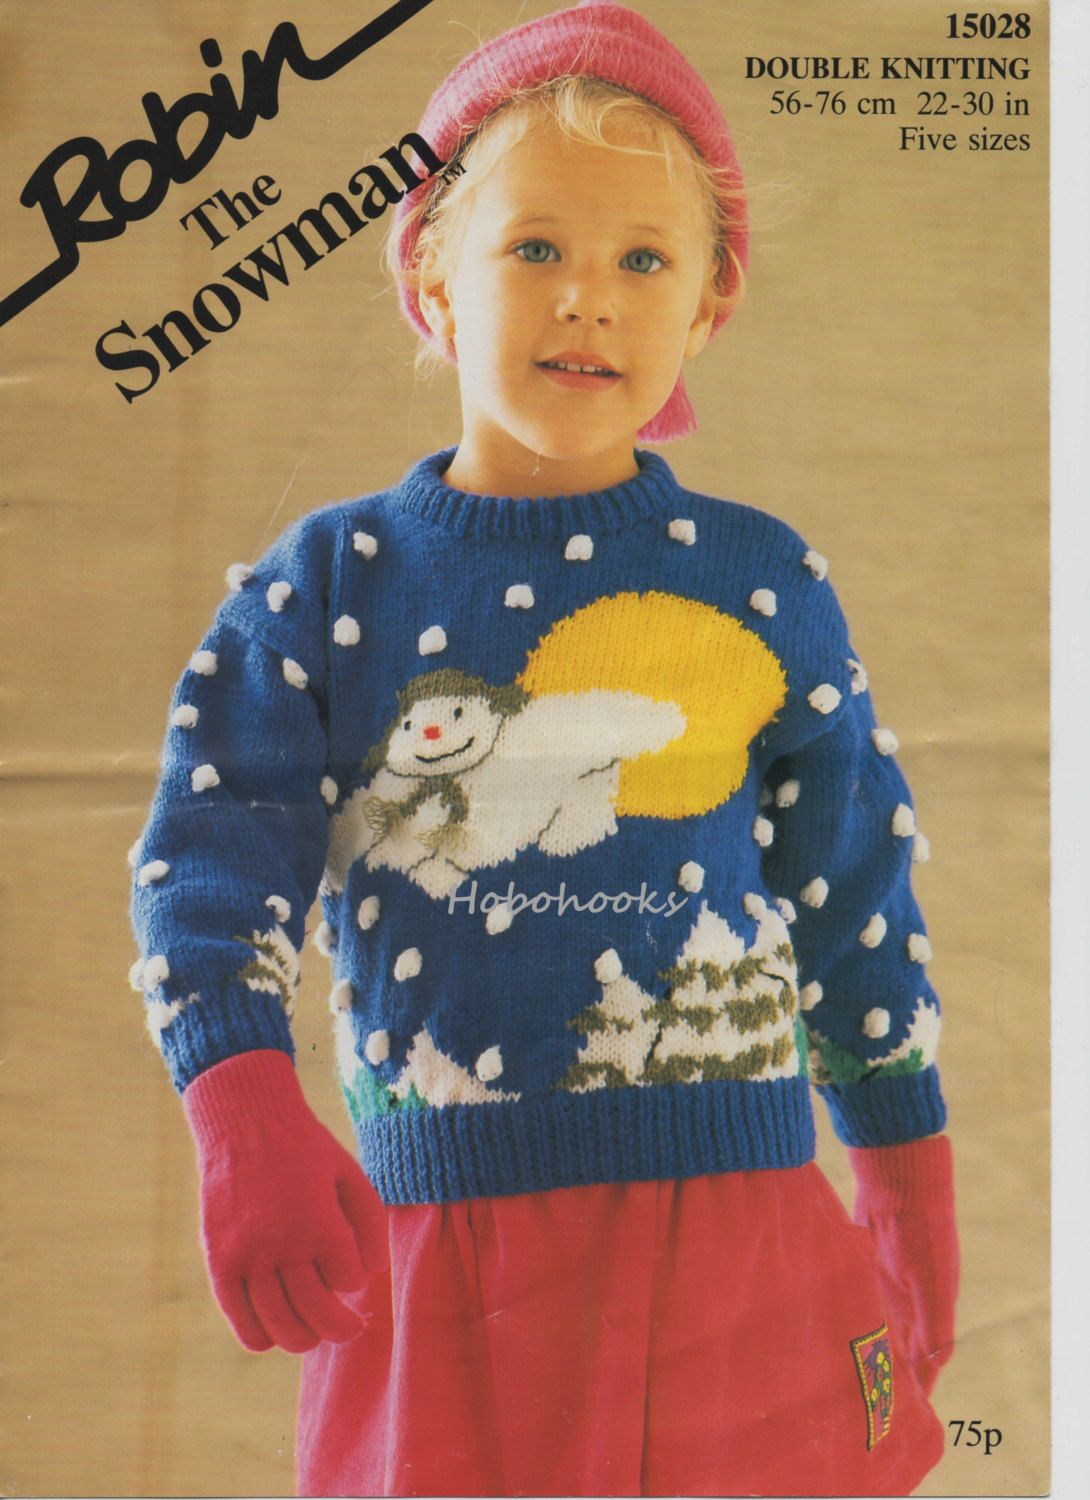 Knitting Patterns Childrens Jumpers : childrens knitting pattern pdf download childrens sweater knitting pattern sn...